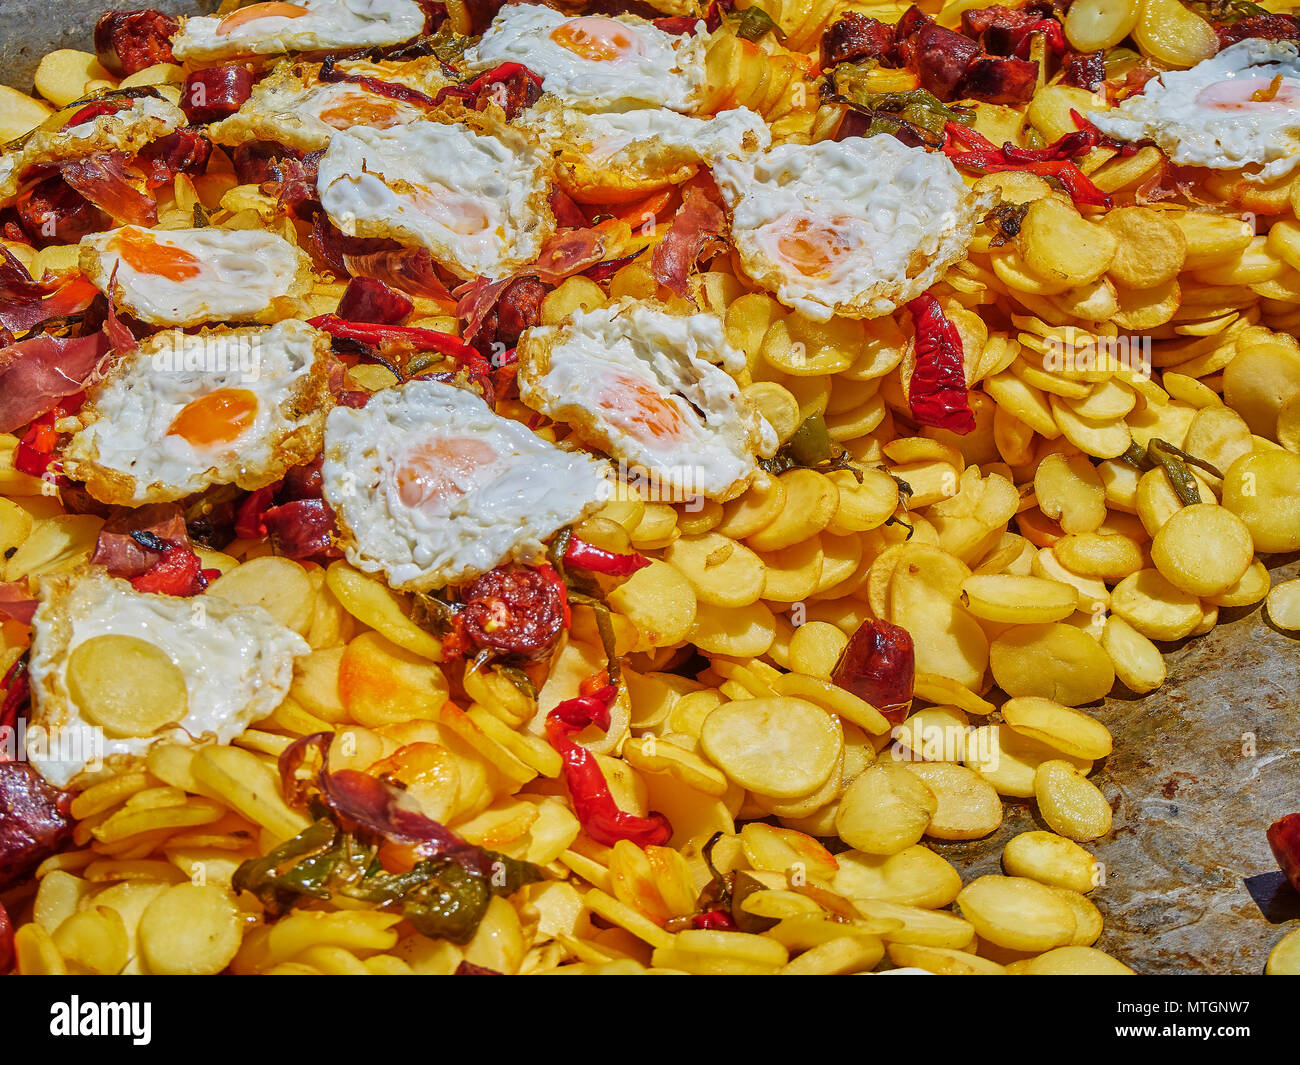 Spanish eggs. Fried eggs with chorizo, potatoes and peppers to the frying pan. Spanish street food. Stock Photo